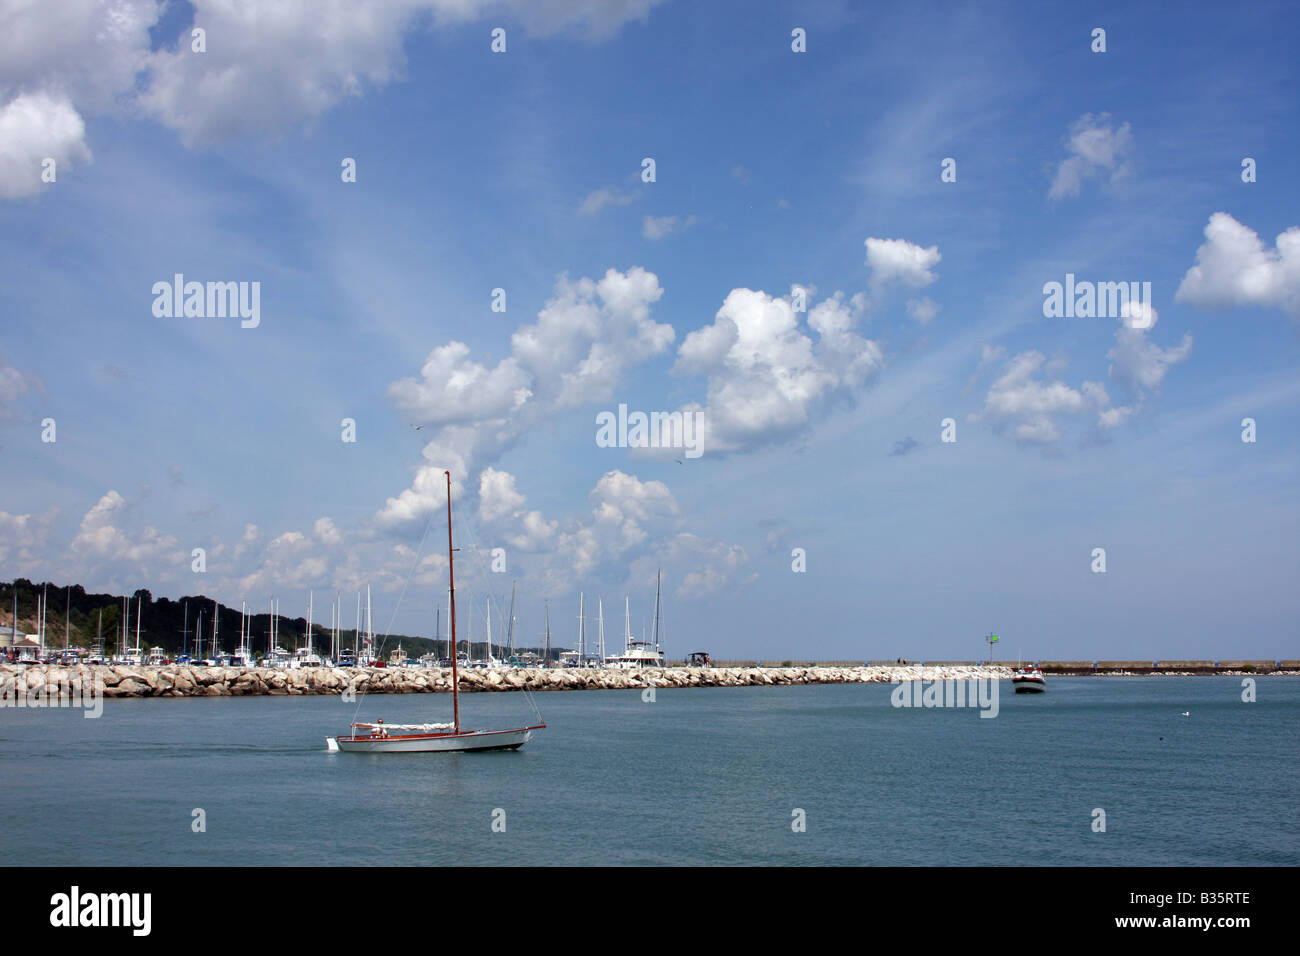 A sailing boat leaving the harbor area at the Maritime Festiville in Port Washington Wisconsin - Stock Image